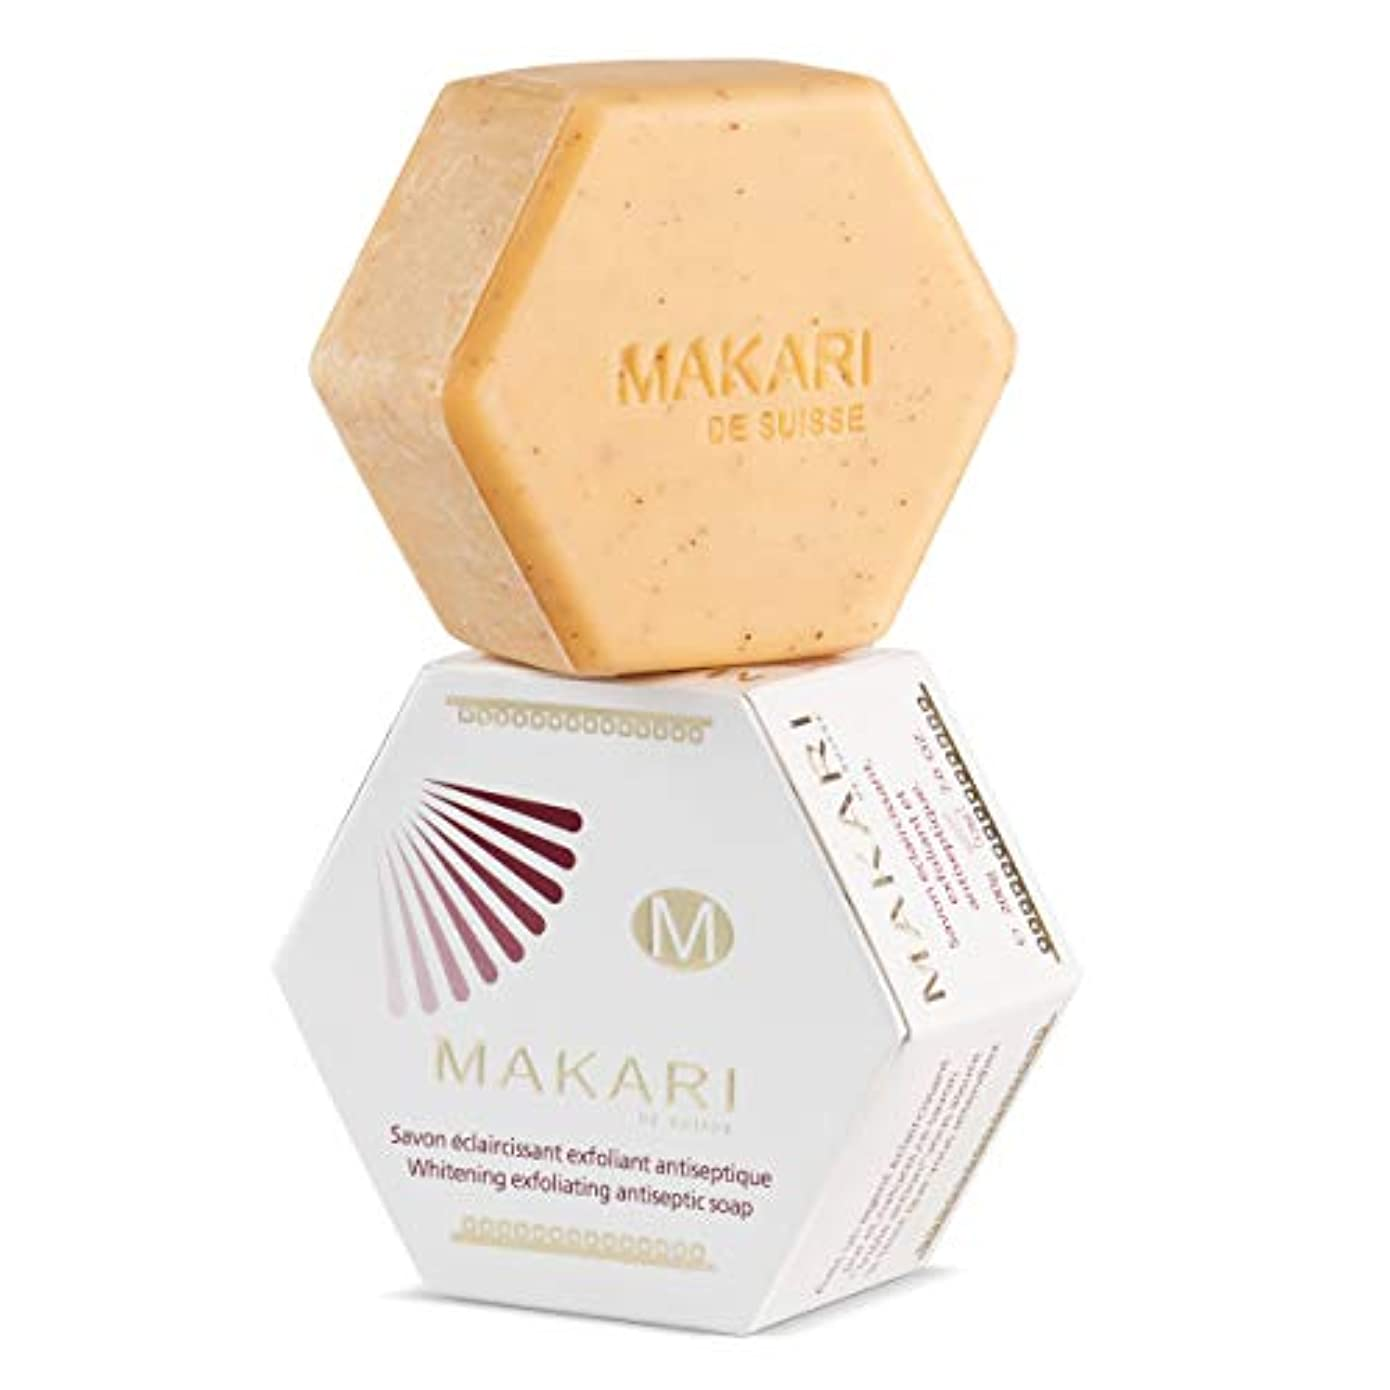 バラ色素敵な醸造所MAKARI Classic Whitening Exfoliating Antiseptic Soap 7 Oz.– Cleansing & Moisturizing Bar Soap For Face & Body...